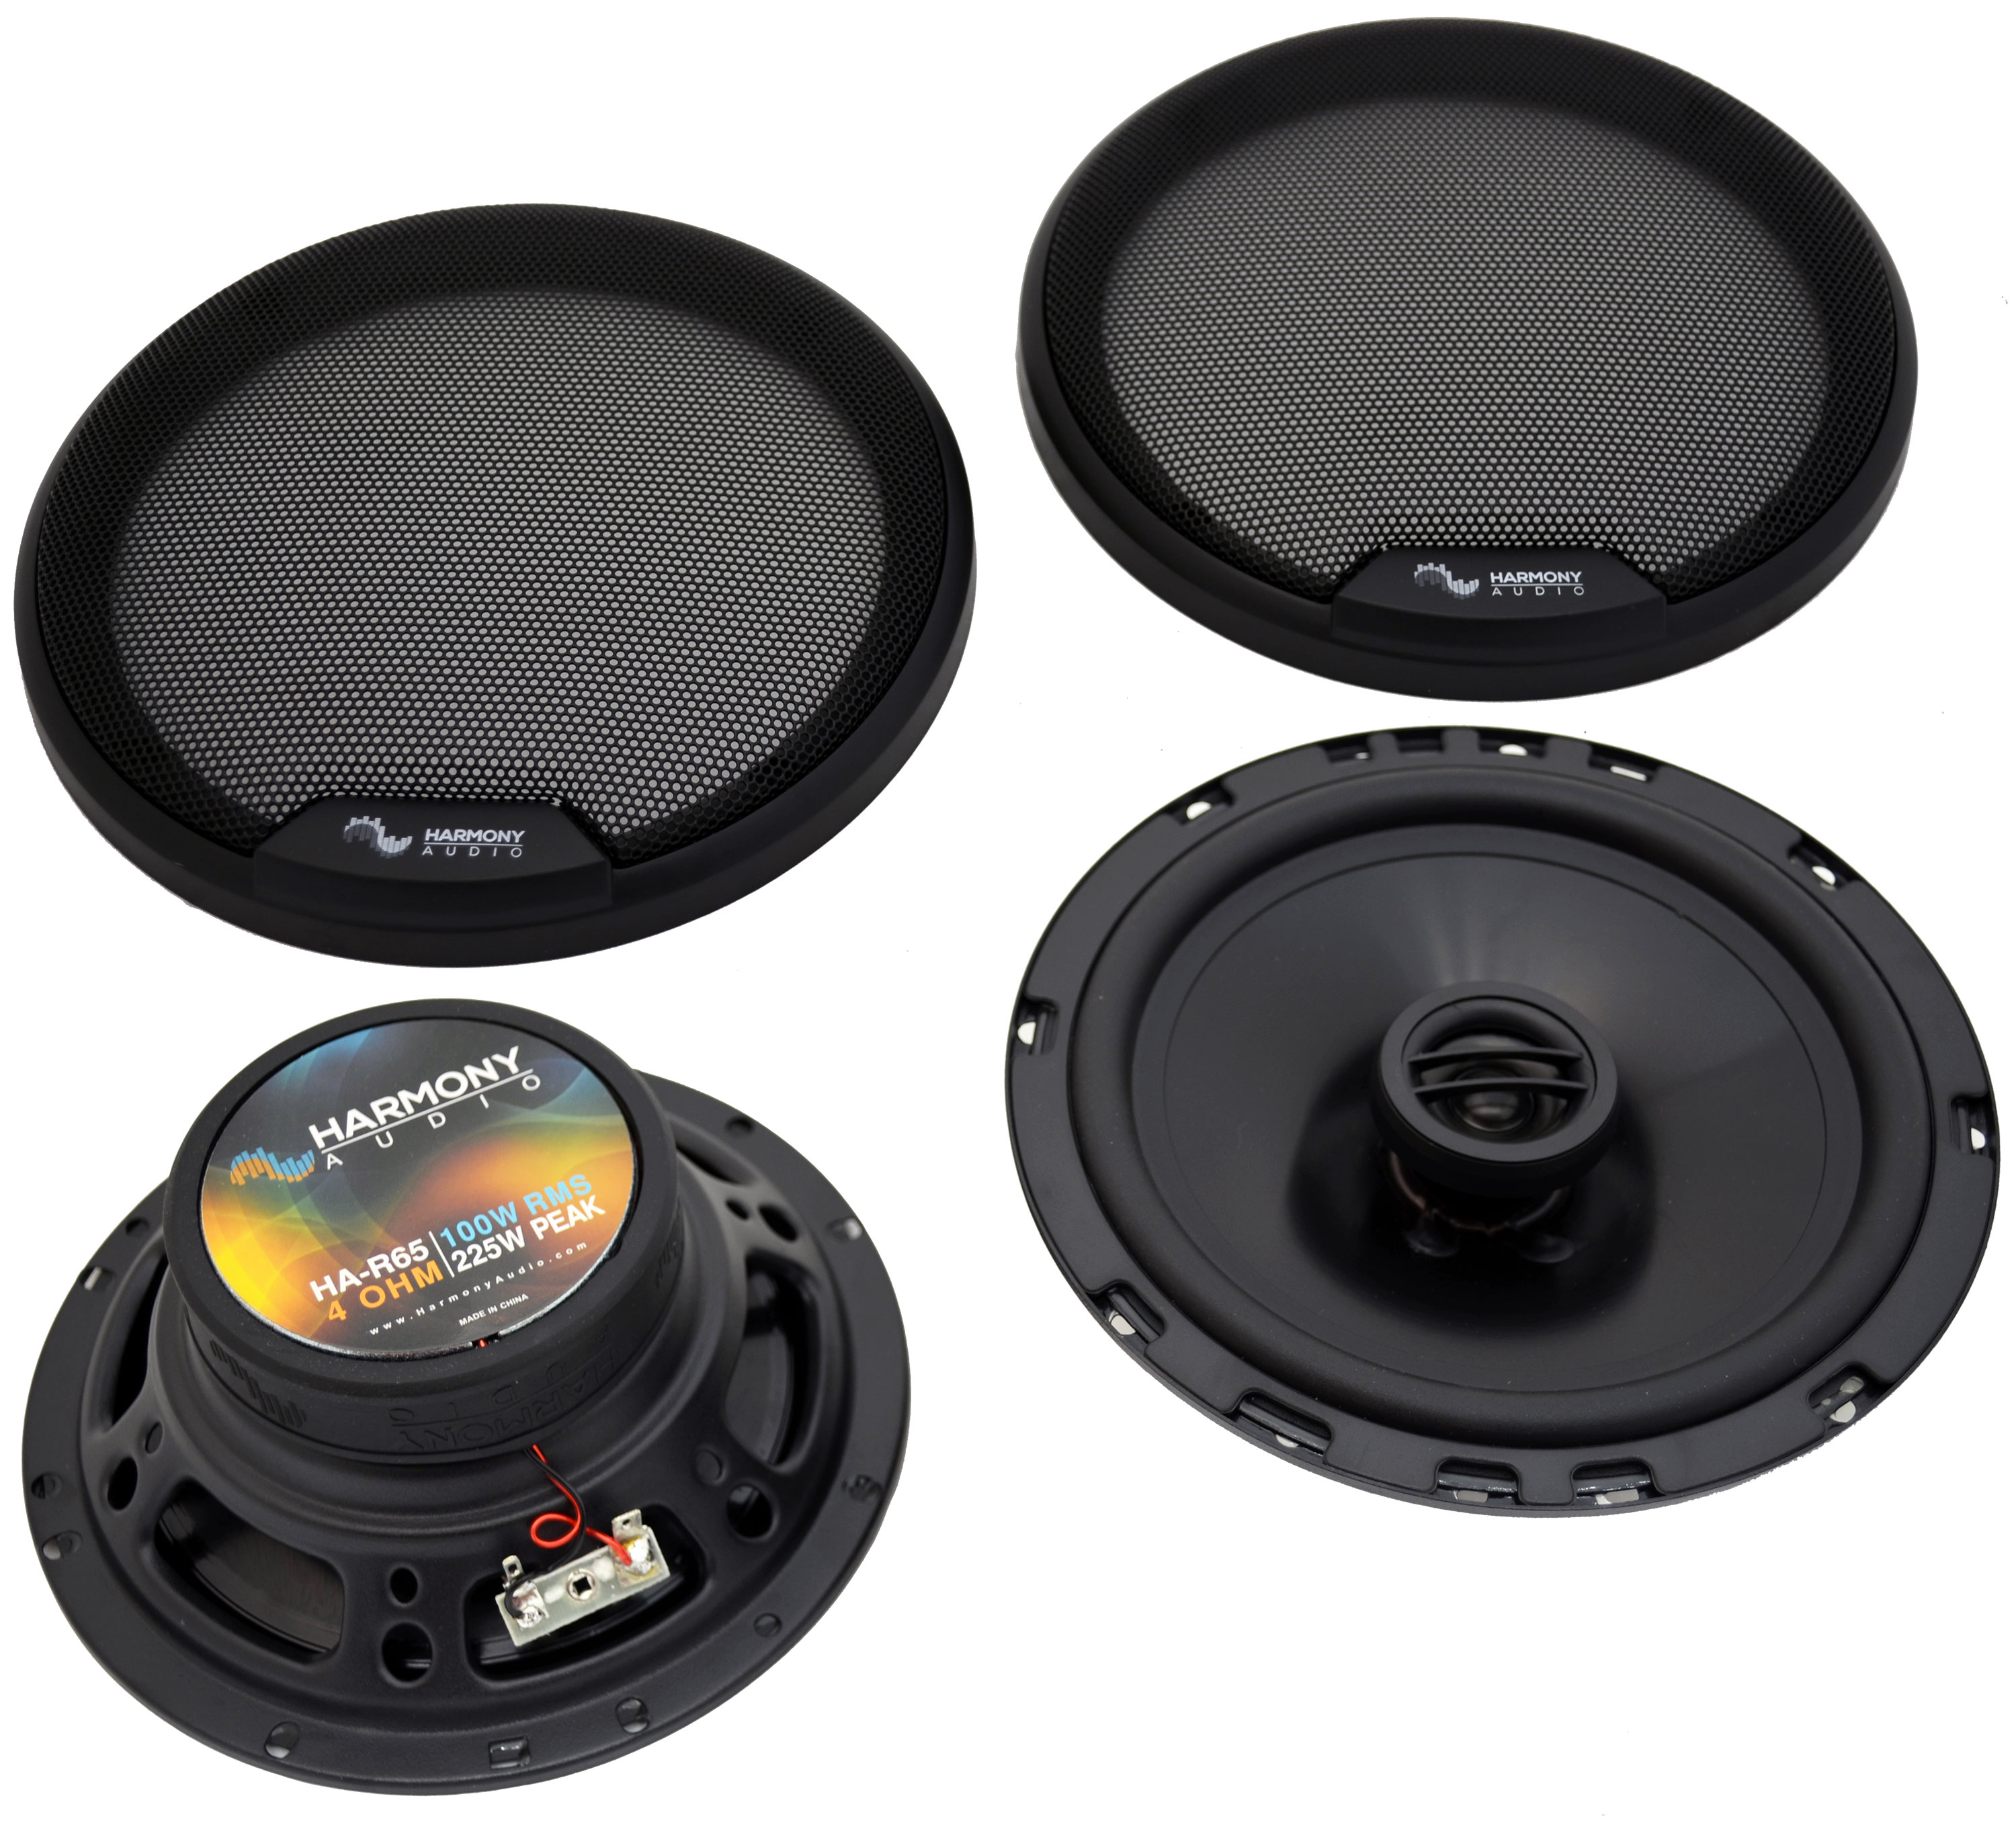 Fits BMW 3 Series 2007-2011 Rear Deck Replacement Harmony HA-R65 Speakers New